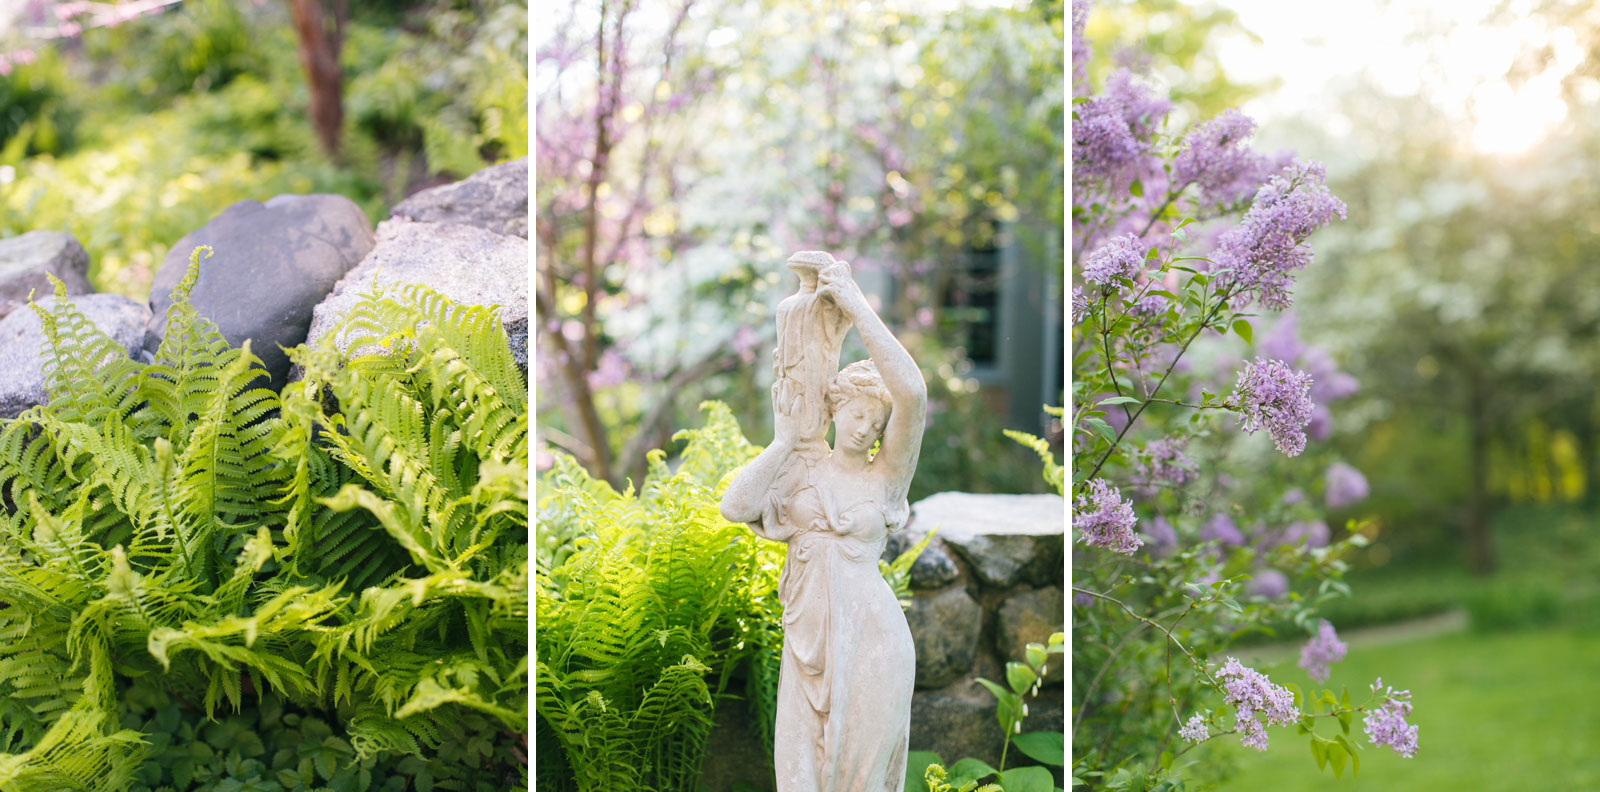 details of ferns and lilacs and statues in the gardens at Mass Audubon's wildlife sanctuary